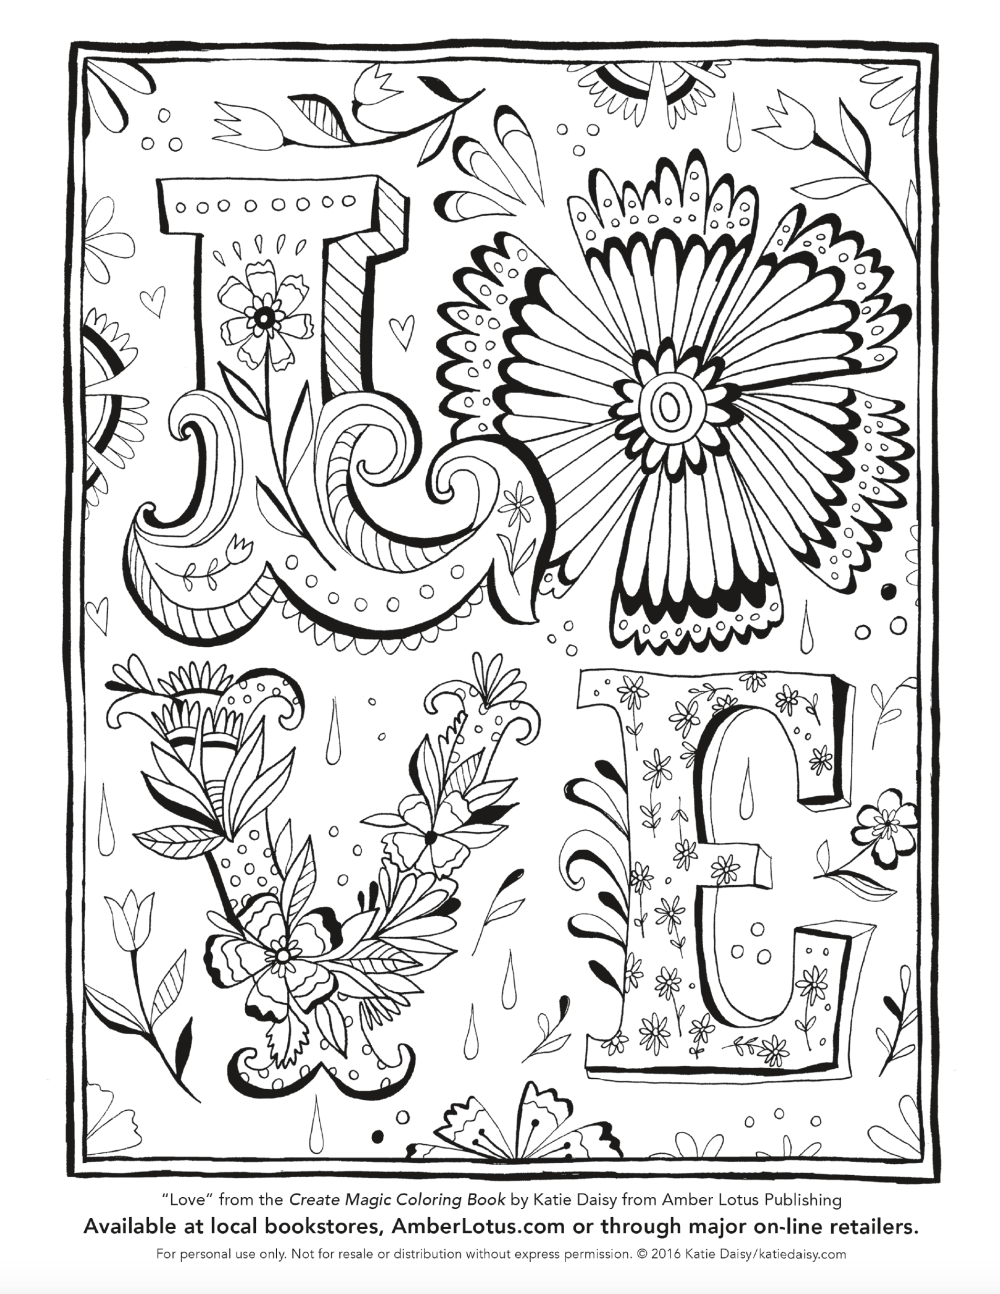 Love coloring page by Katie Daisy from the Create Magic Coloring Book